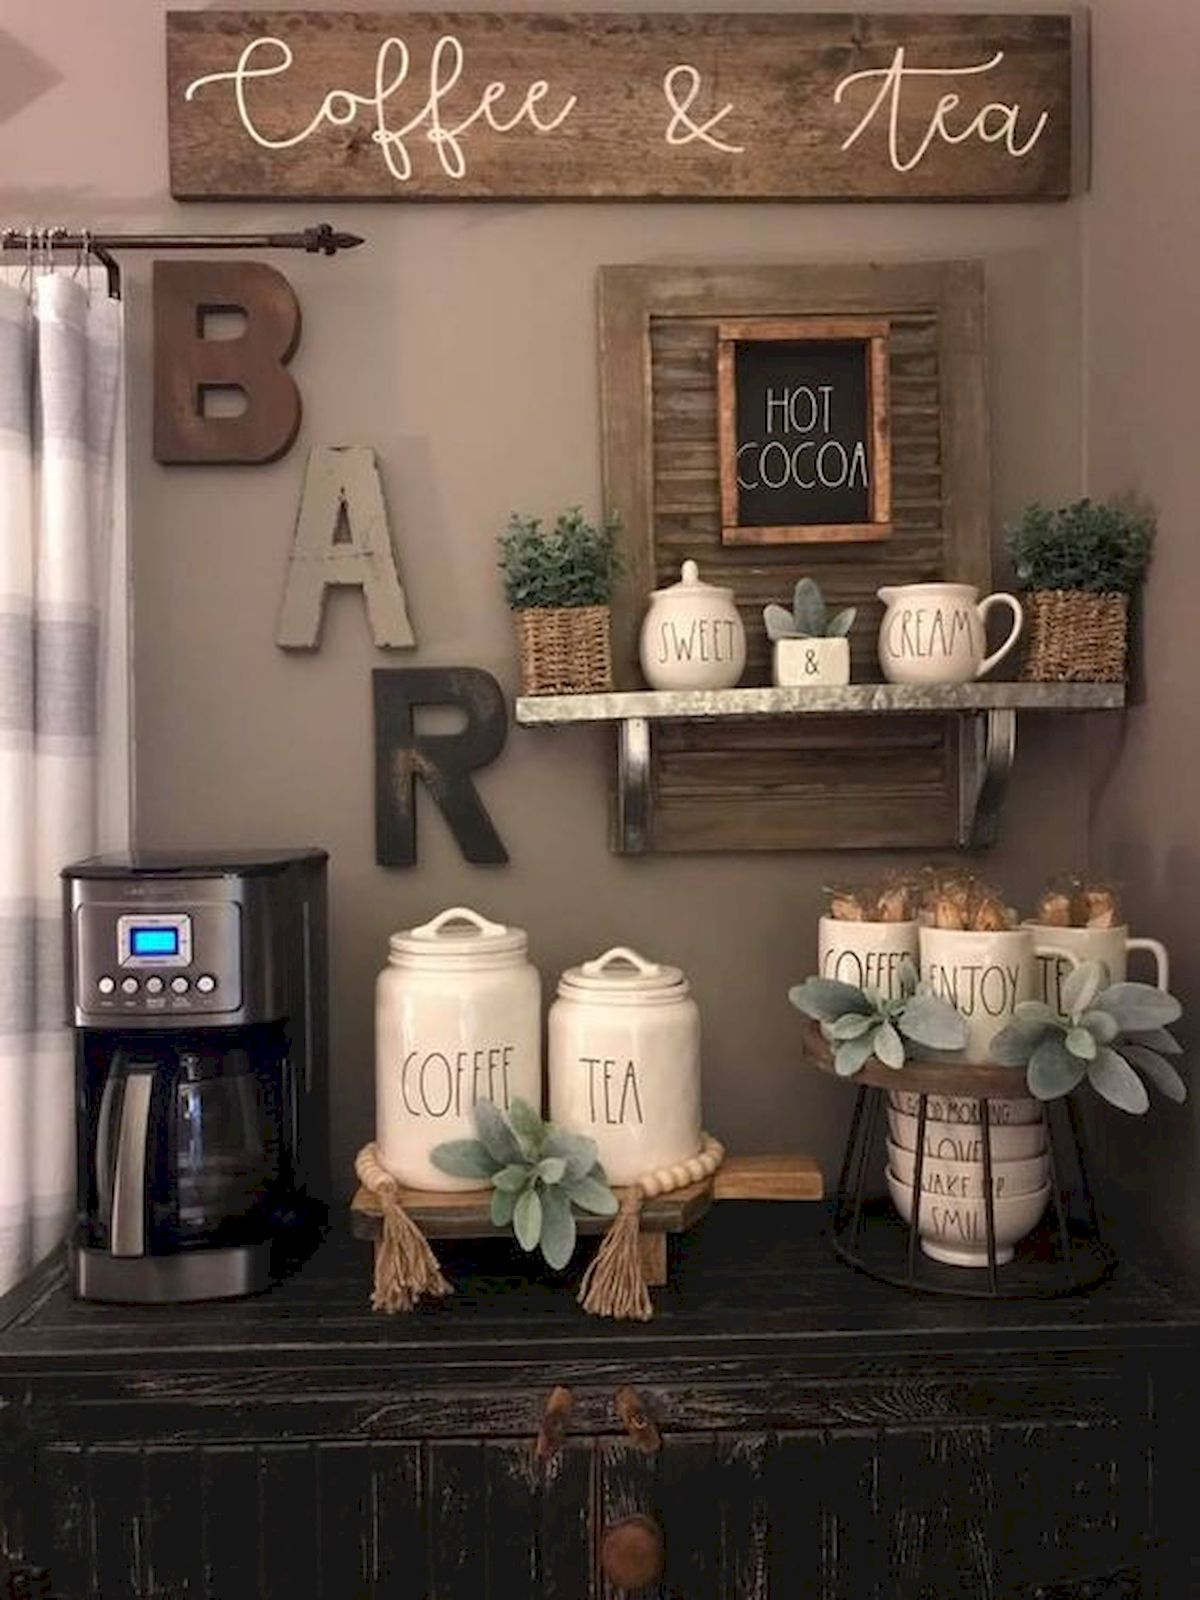 Cool 60 Amazing Mini Coffee Bar Ideas for Your Home source